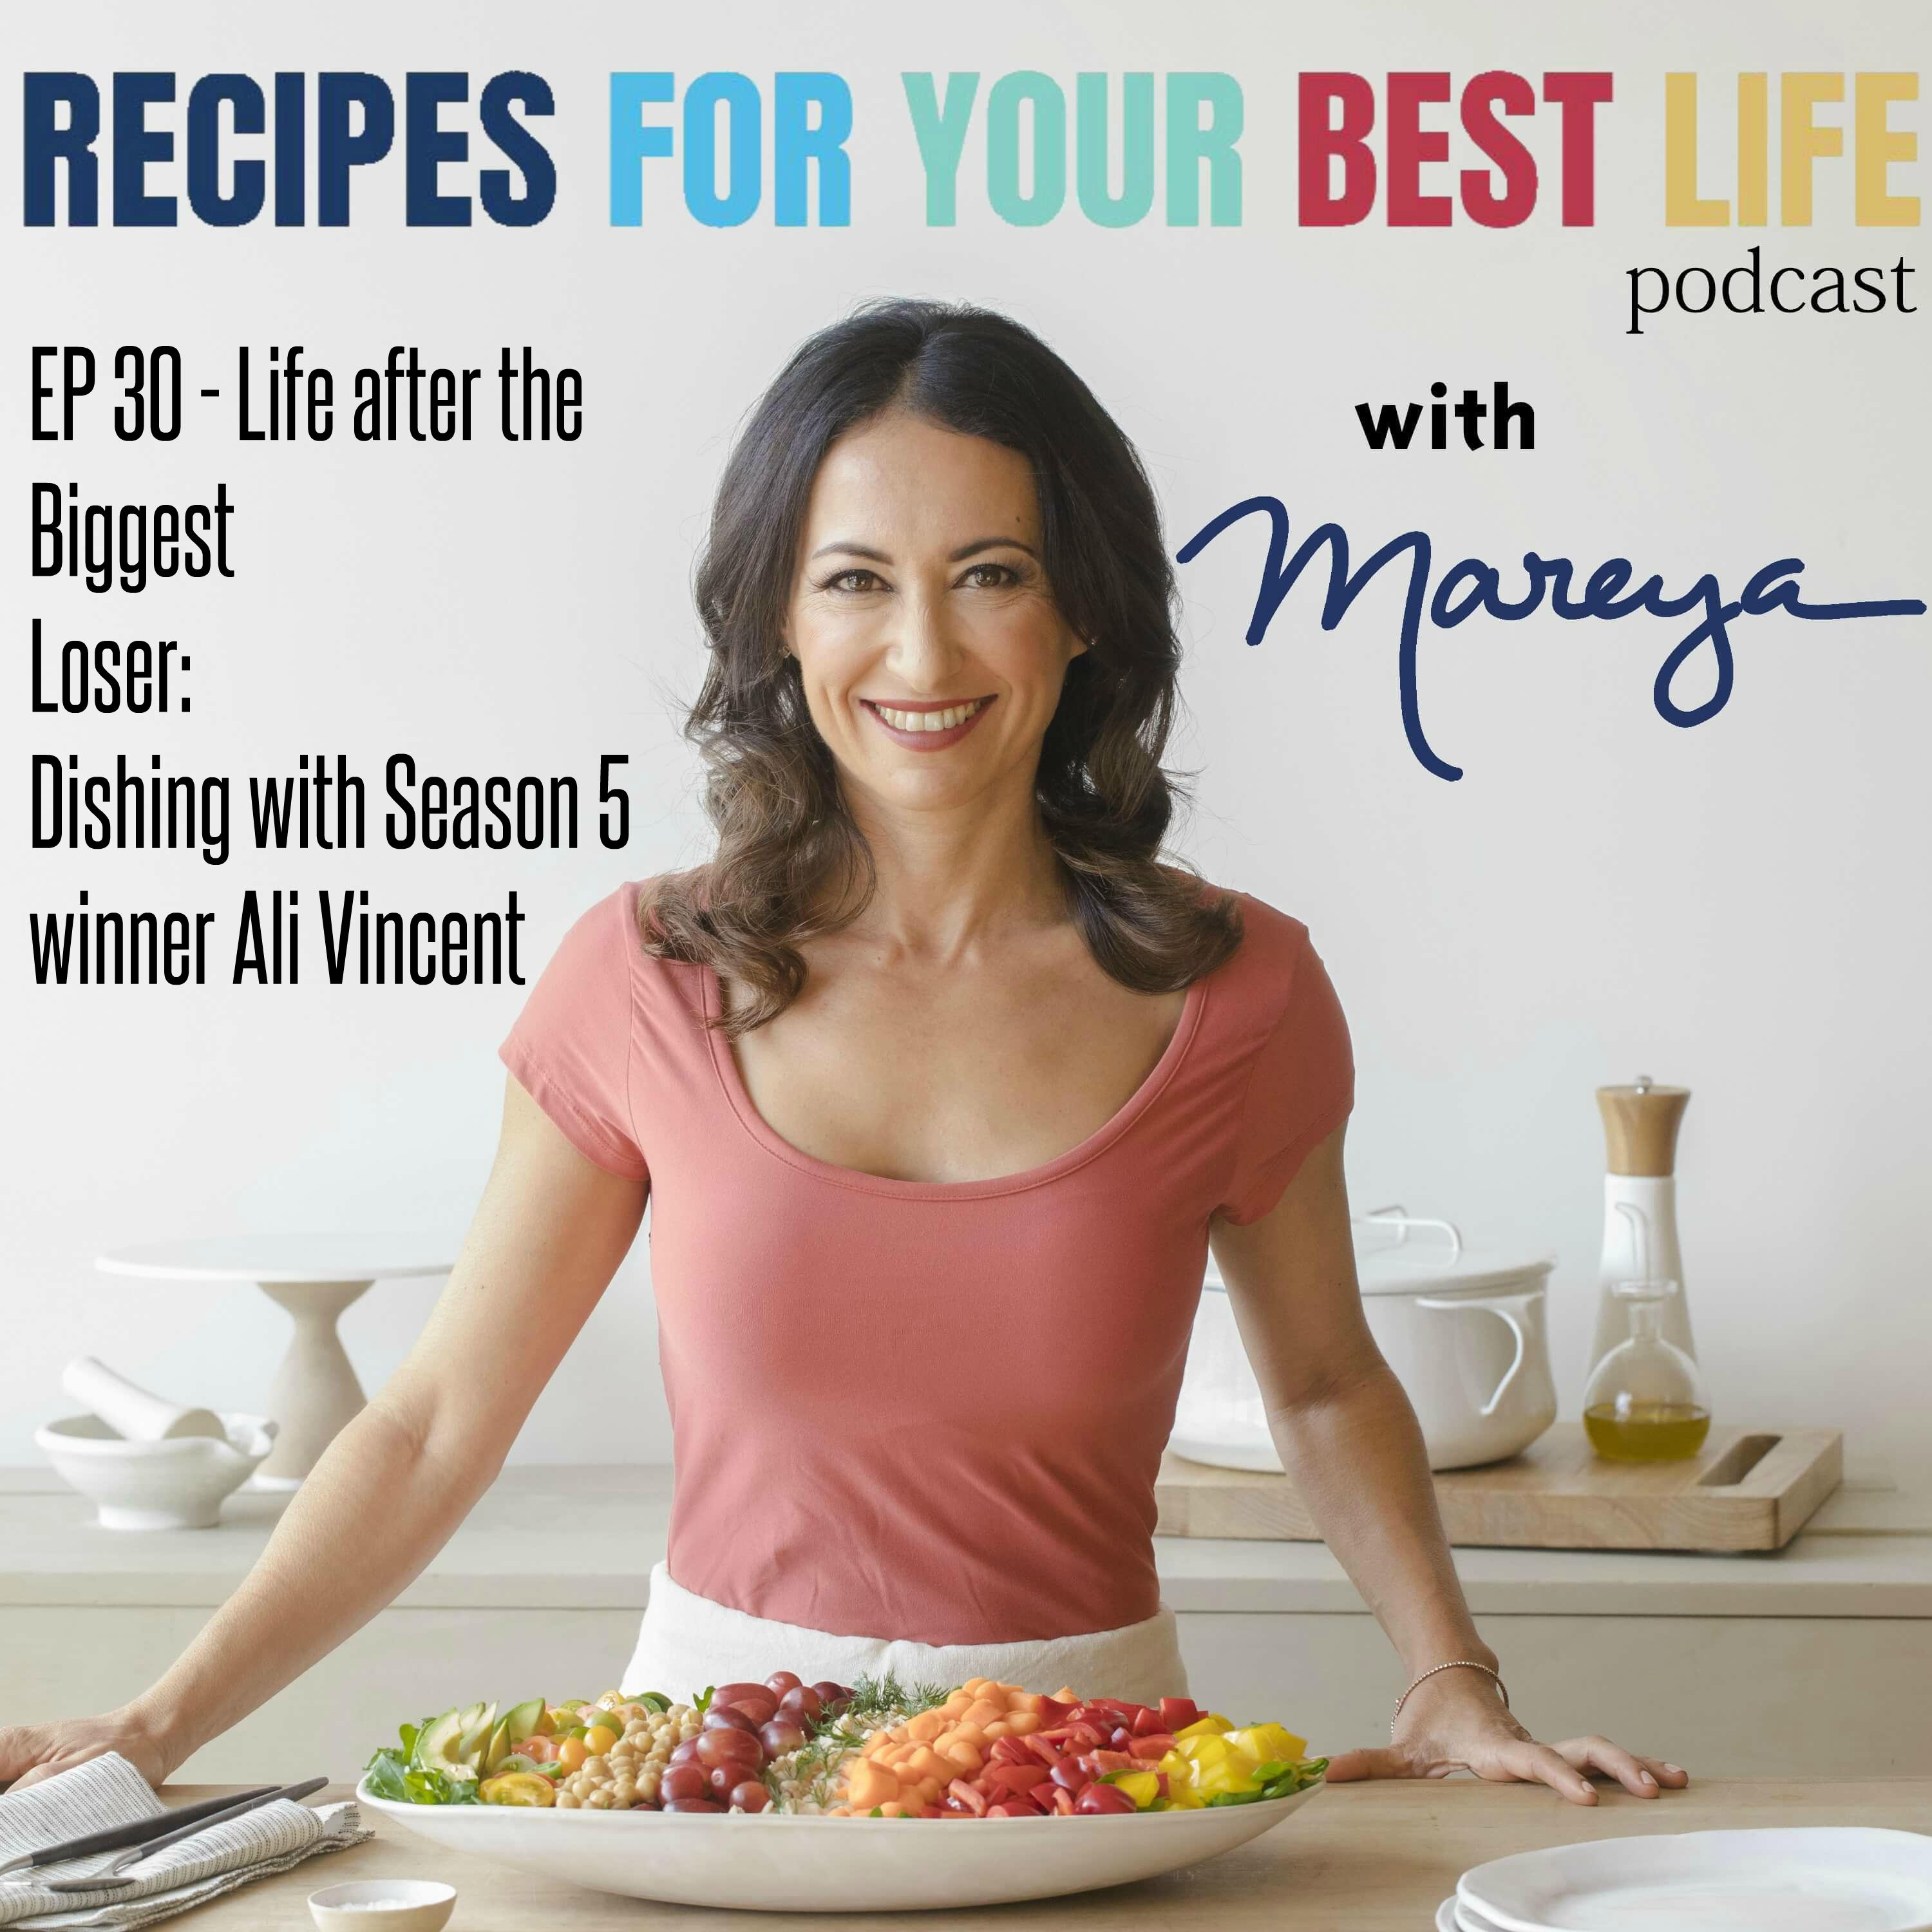 EP 30 - Life after the Biggest Loser: Dishing with Season 5 winner Ali Vincent